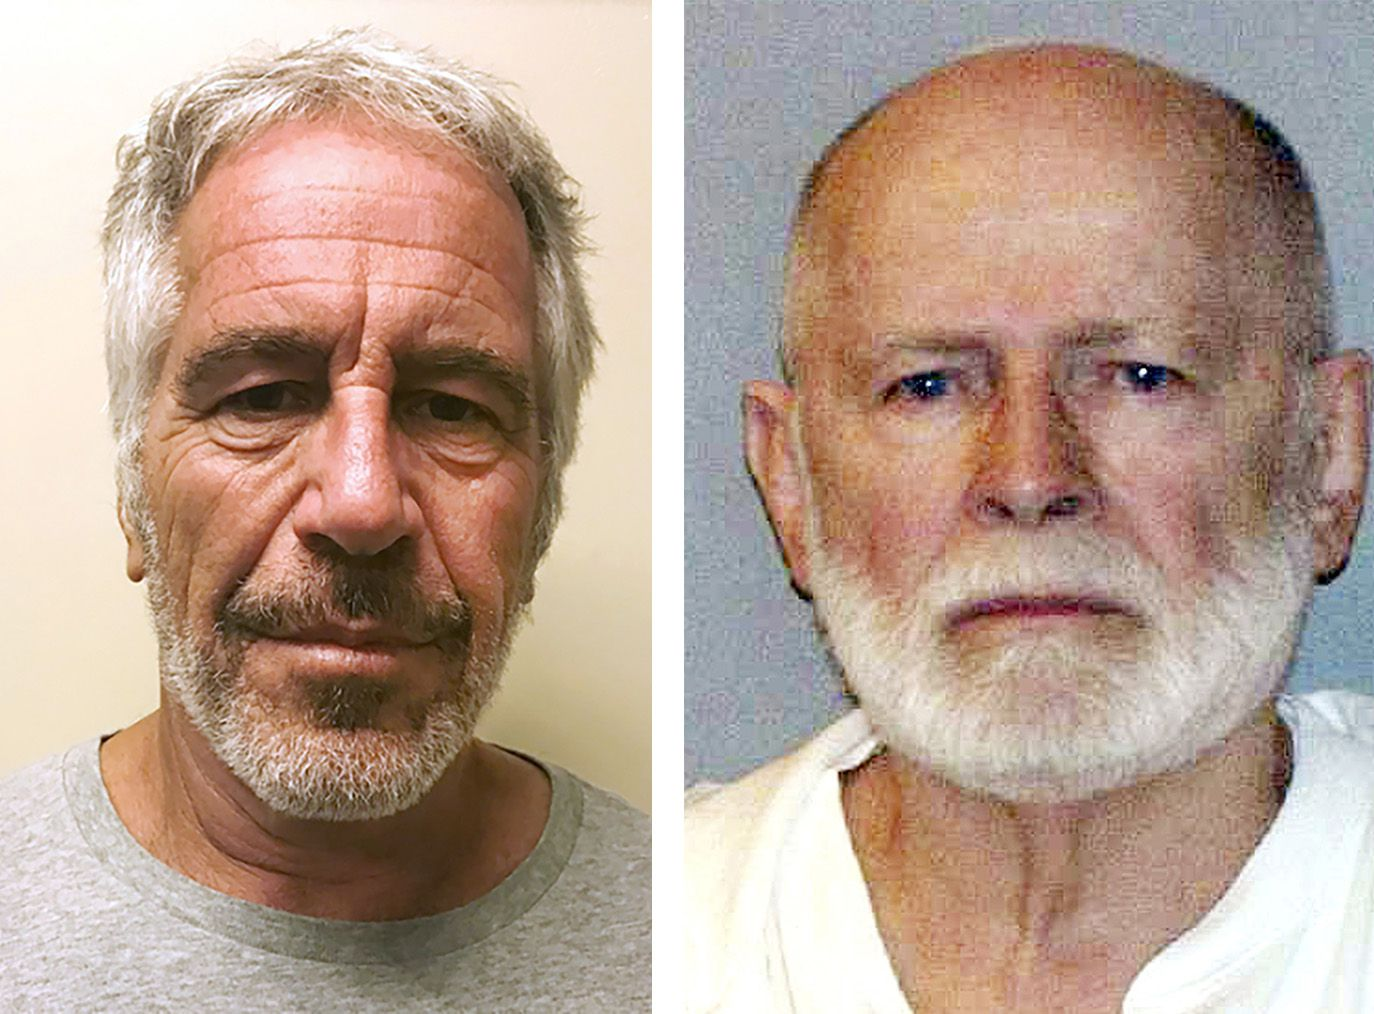 Jeffrey Epstein and 'Whitey' Bulger: A tale of two